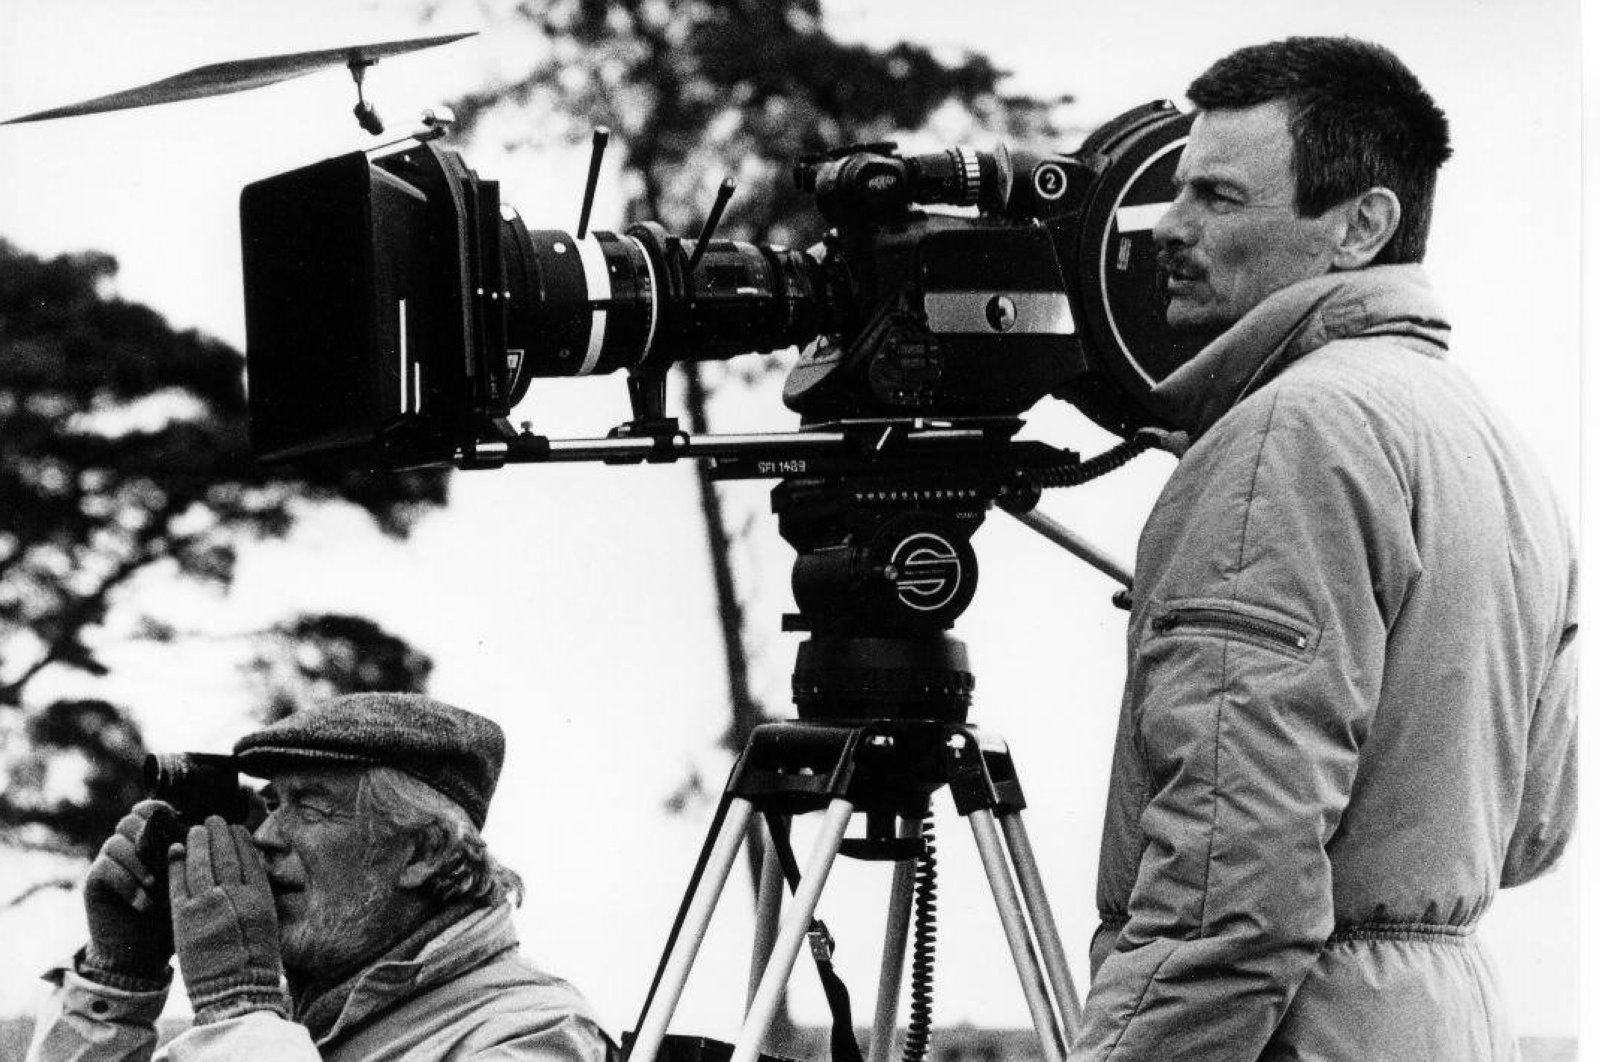 An undated photo showing Tarkovsky behind a camera during a filming. (Courtesy of Pera Museum)